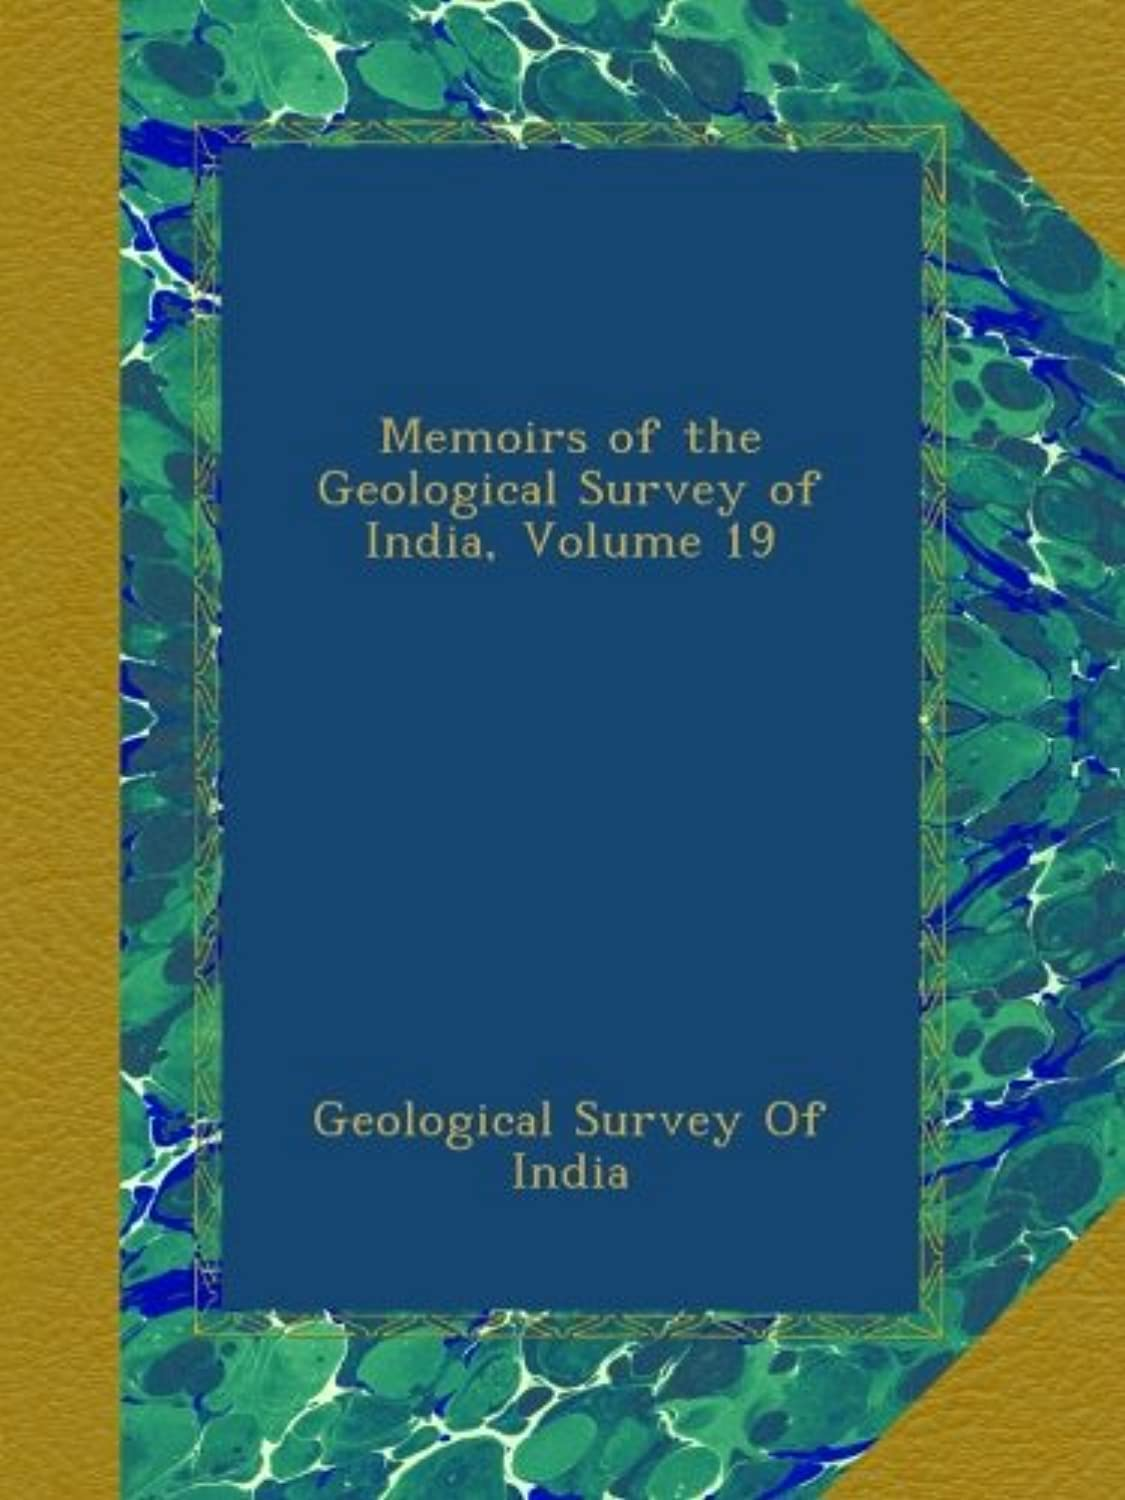 Memoirs of the Geological Survey of India, Volume 19